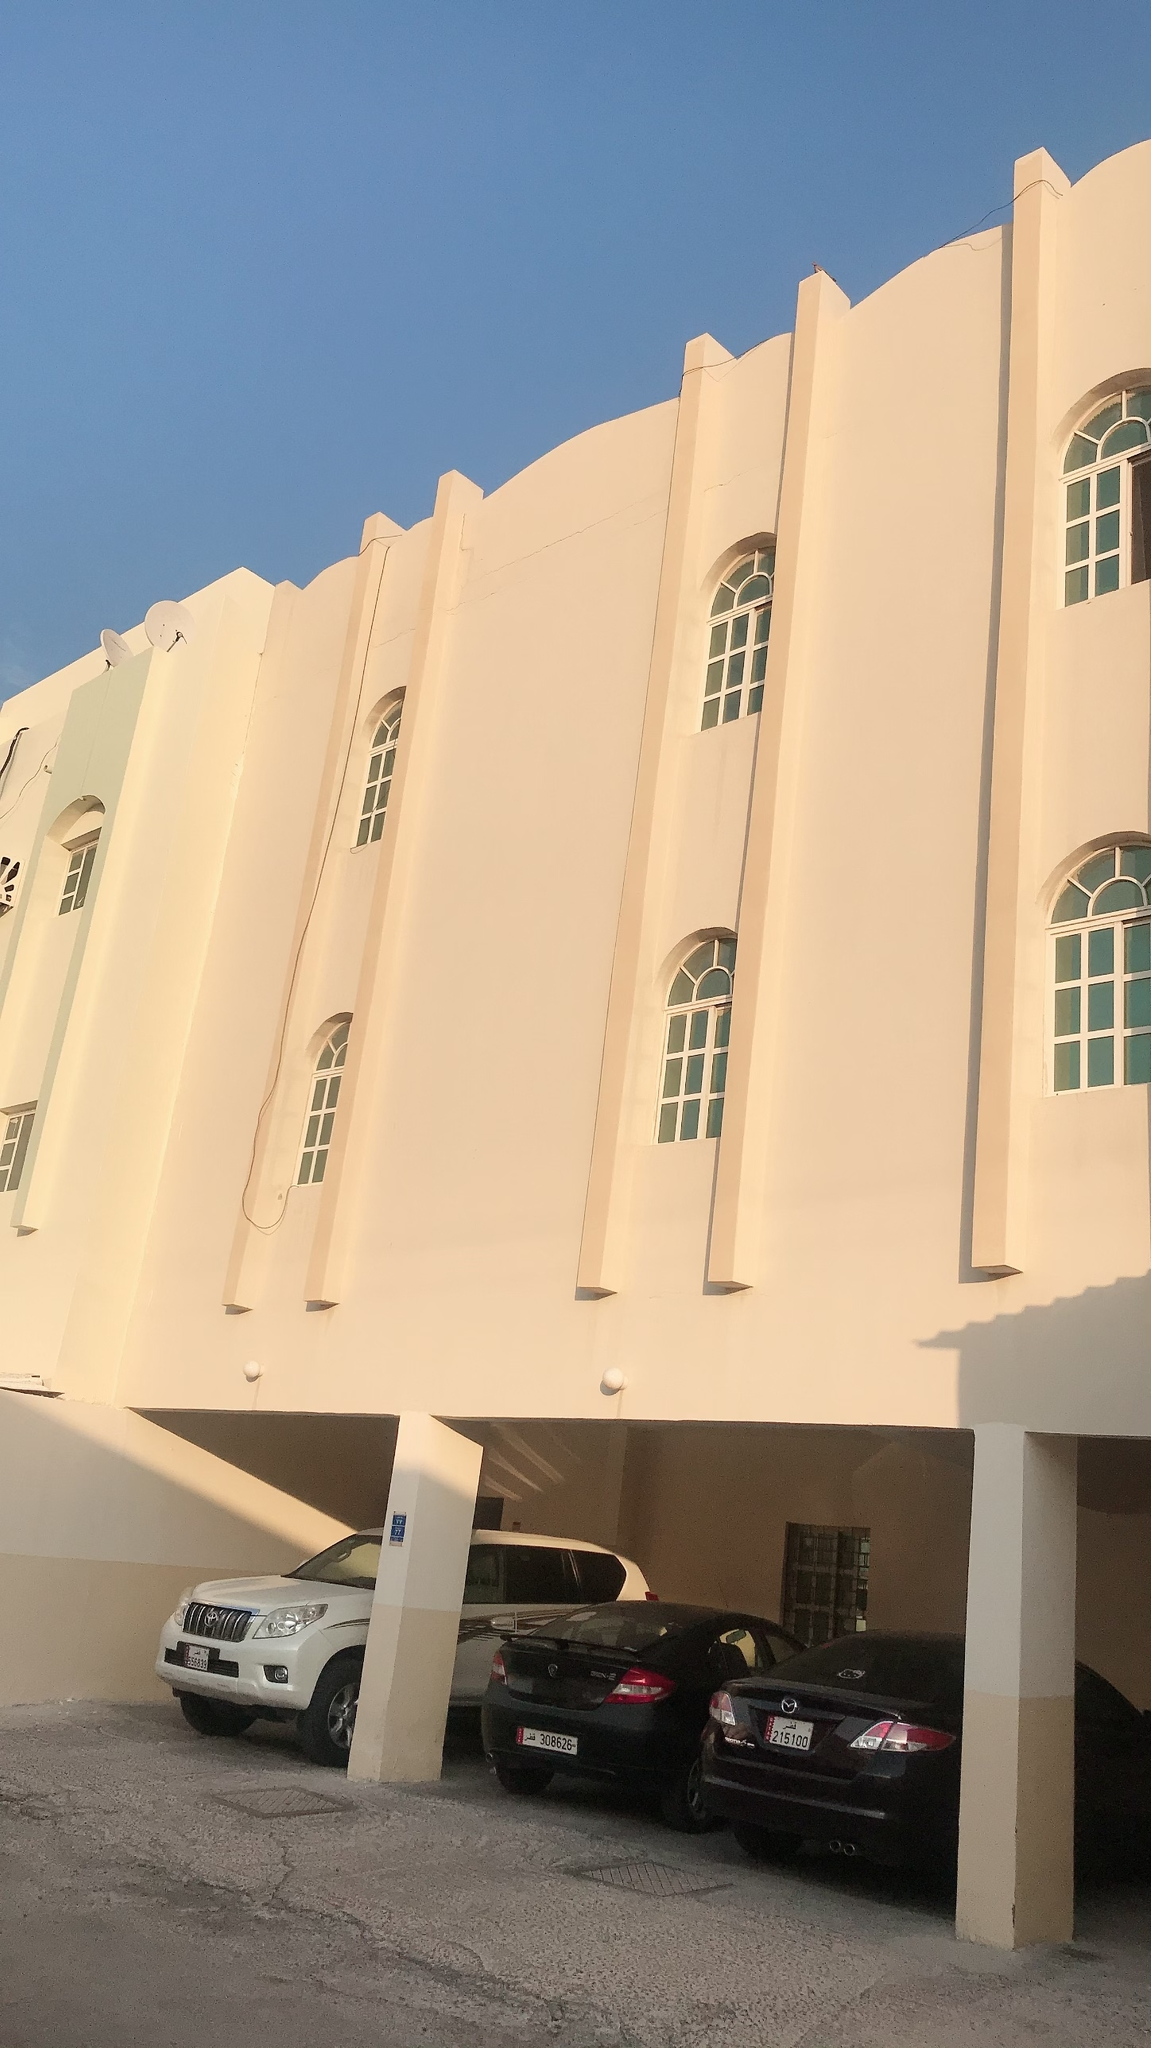 2 BHK PHILIPPINE/ASIAN FAMILY ACCOMMODATION (ONE MONTH FREE) @ OLDAIRPORT BEHIND DOHA BANK